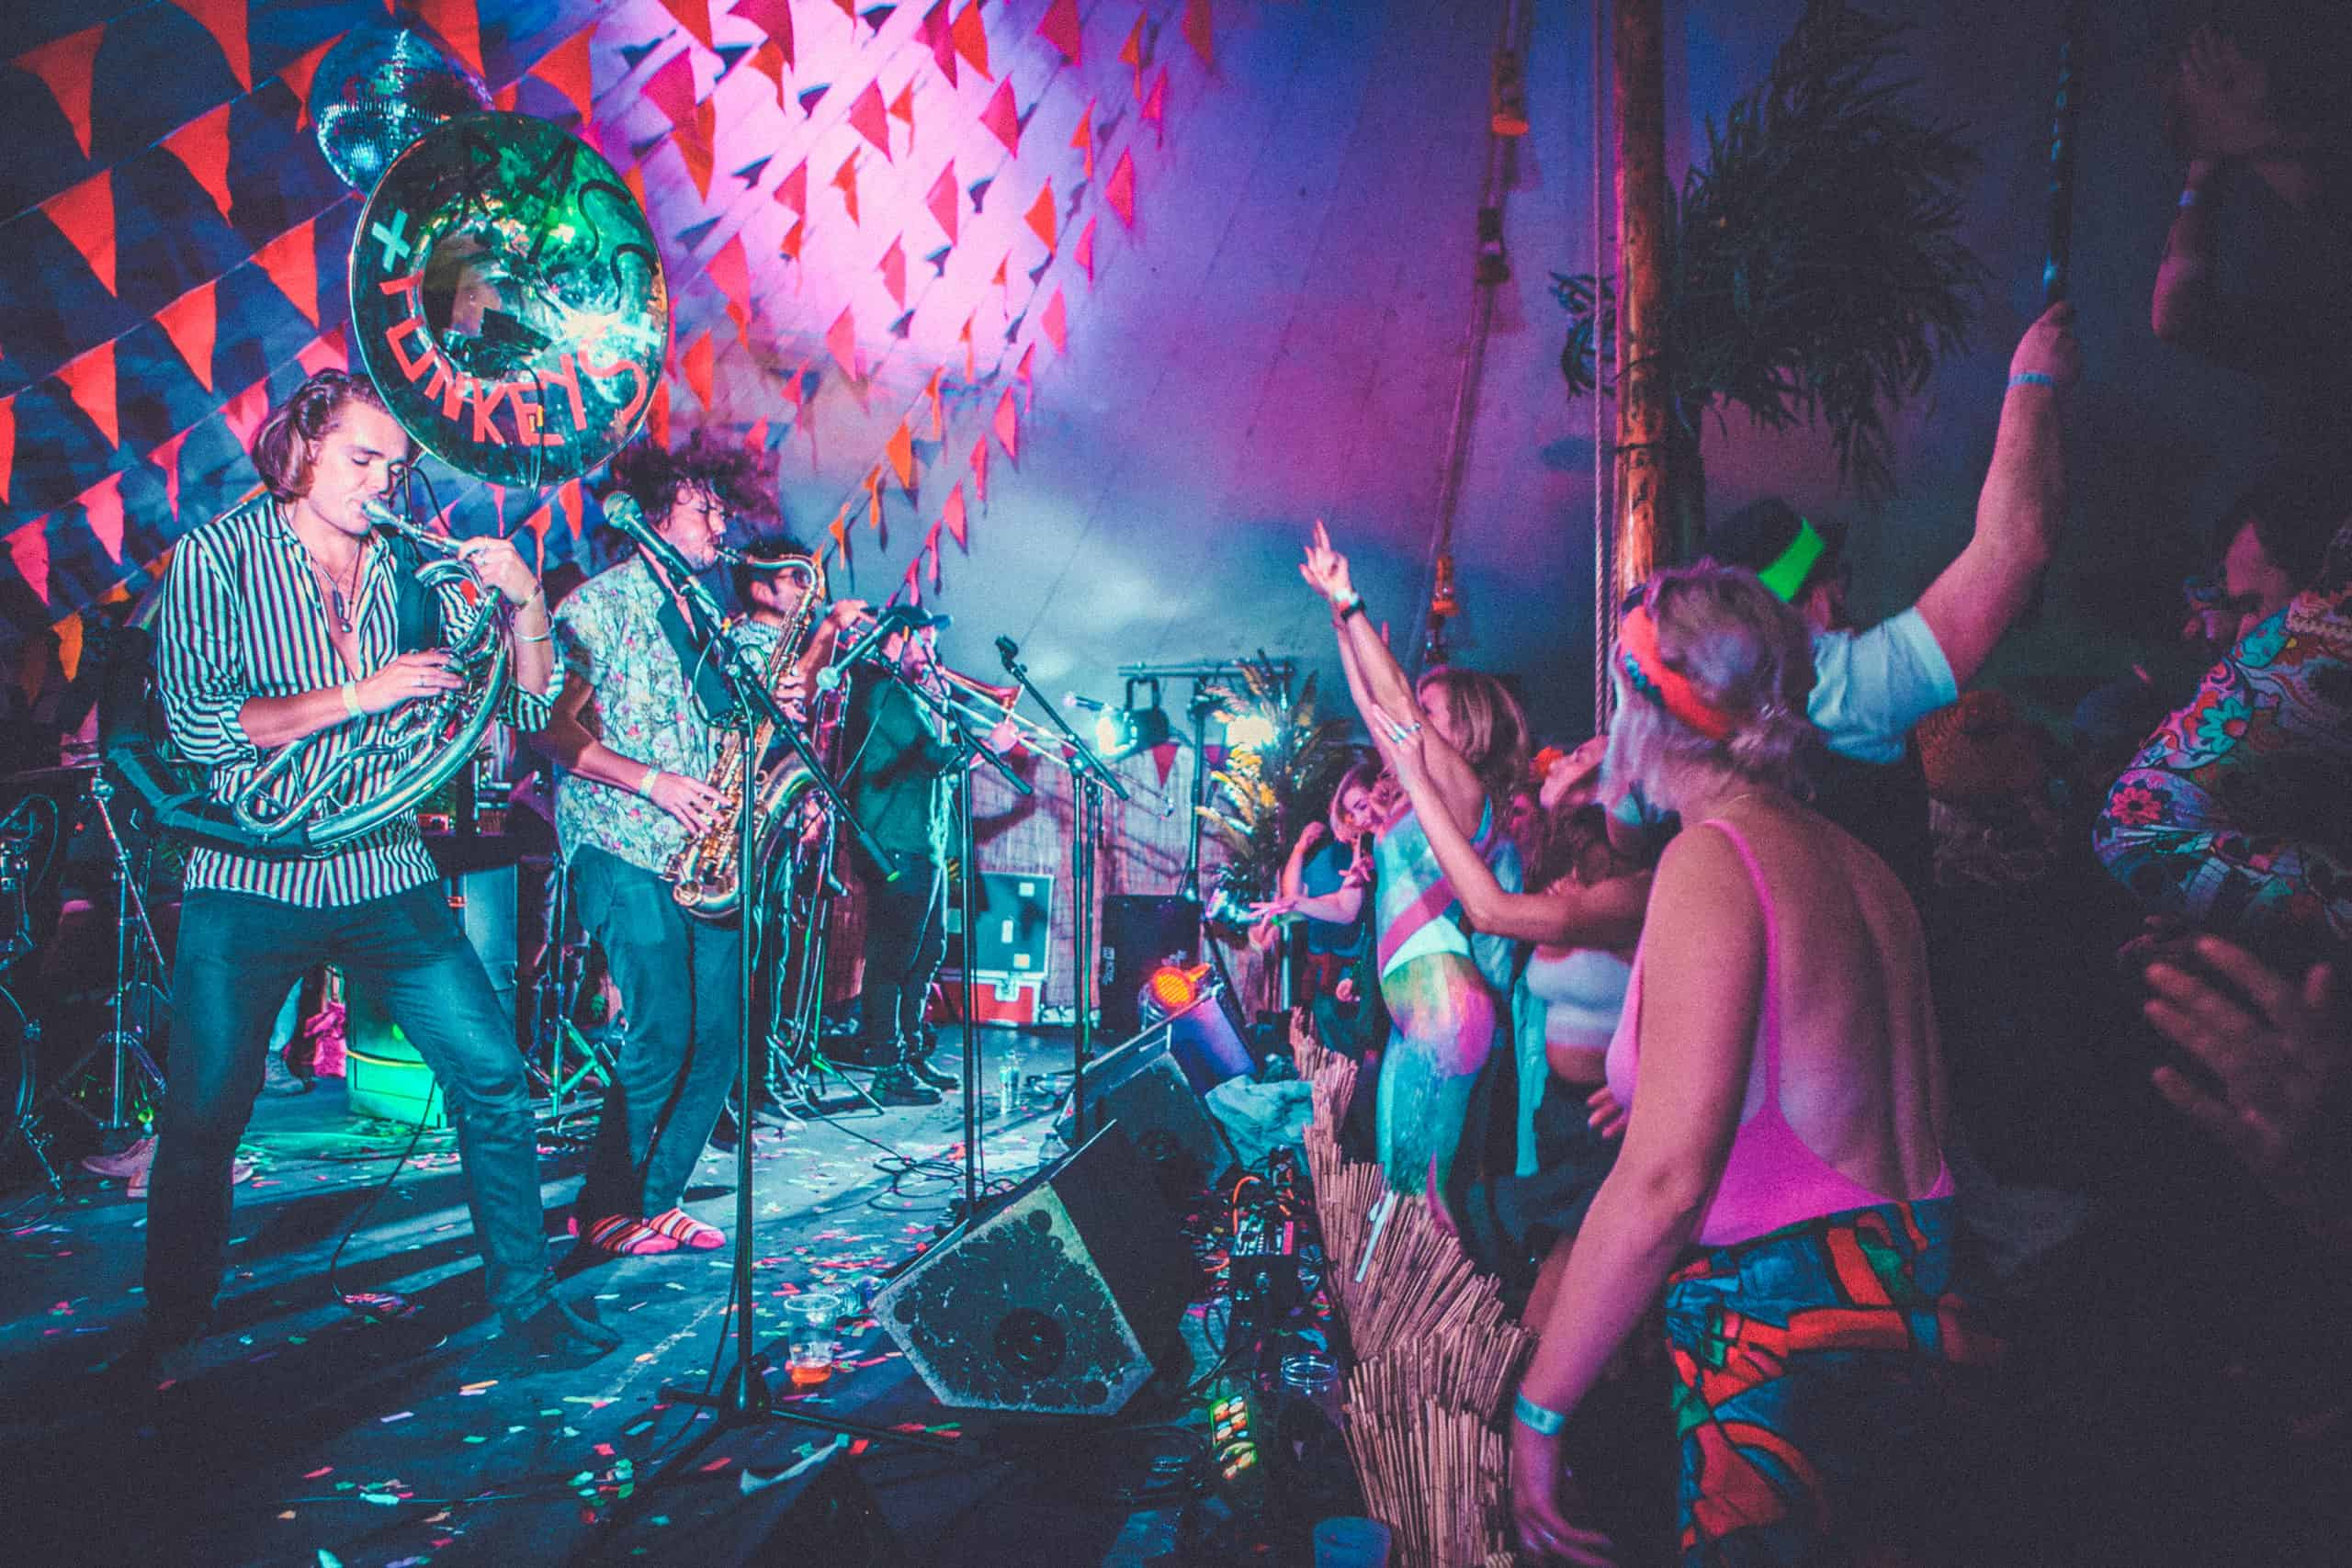 Brass Funkey's at Camp Wildfire on stage at the discotheque tent. A summer weekend break in a forest near London and Kent. An outdoor woodland retreat featuring adventure activities, live music, DJs, parties and camping. Half summer adventure activity camp, half music festival, for adults only.